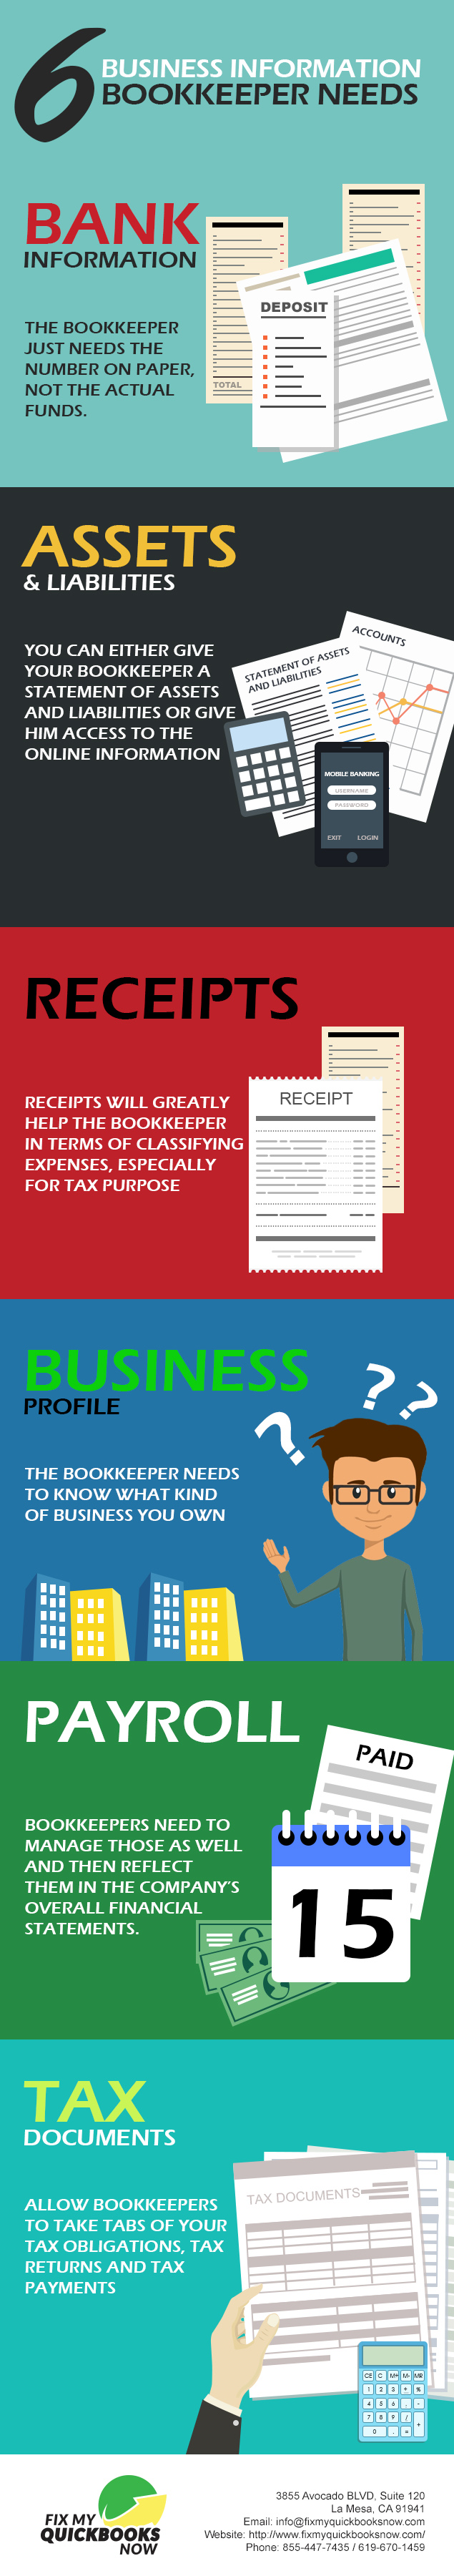 what are the business information you need to let your bookkeepers know